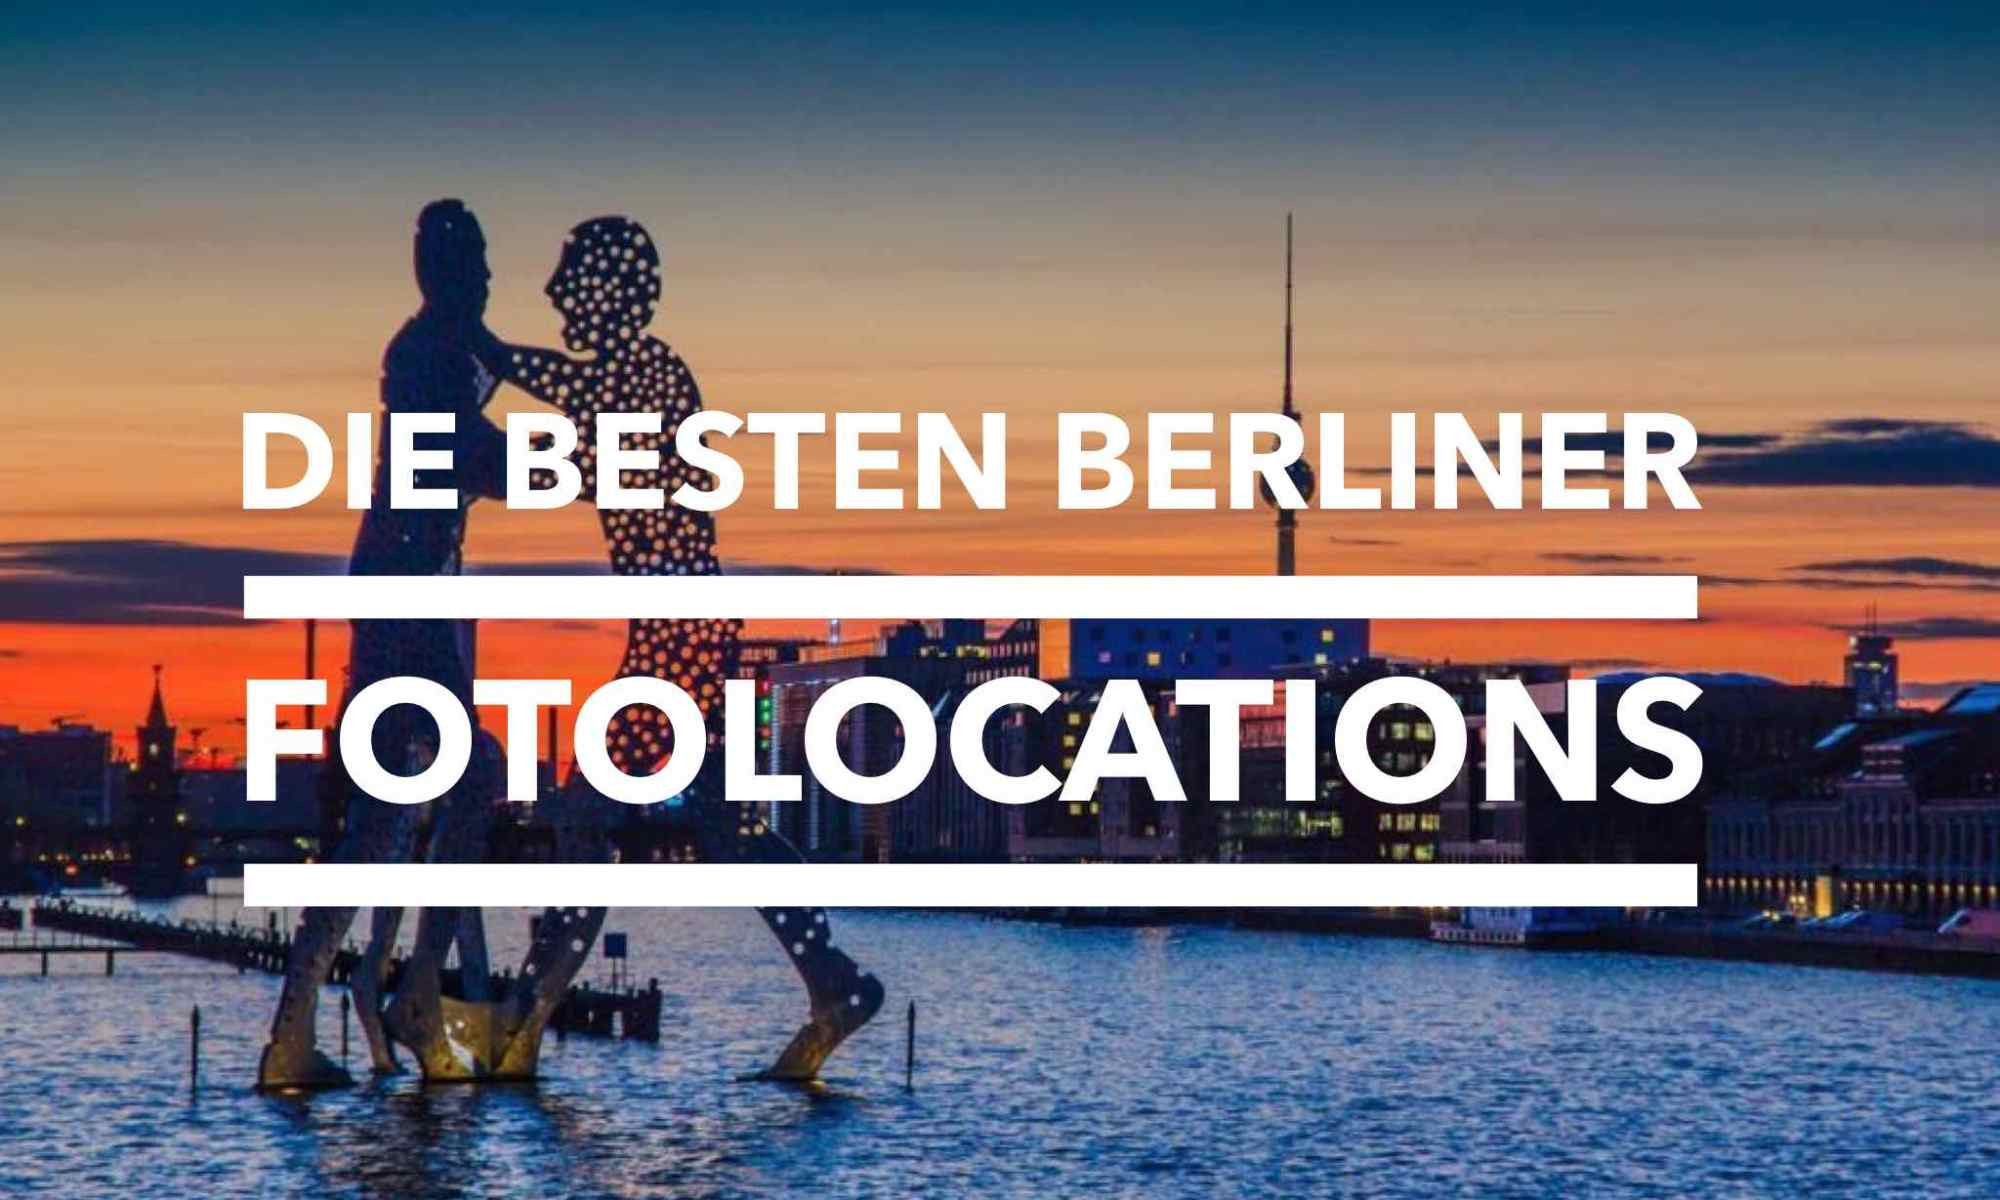 Fotografieren-in-Berlin-Fotolocations